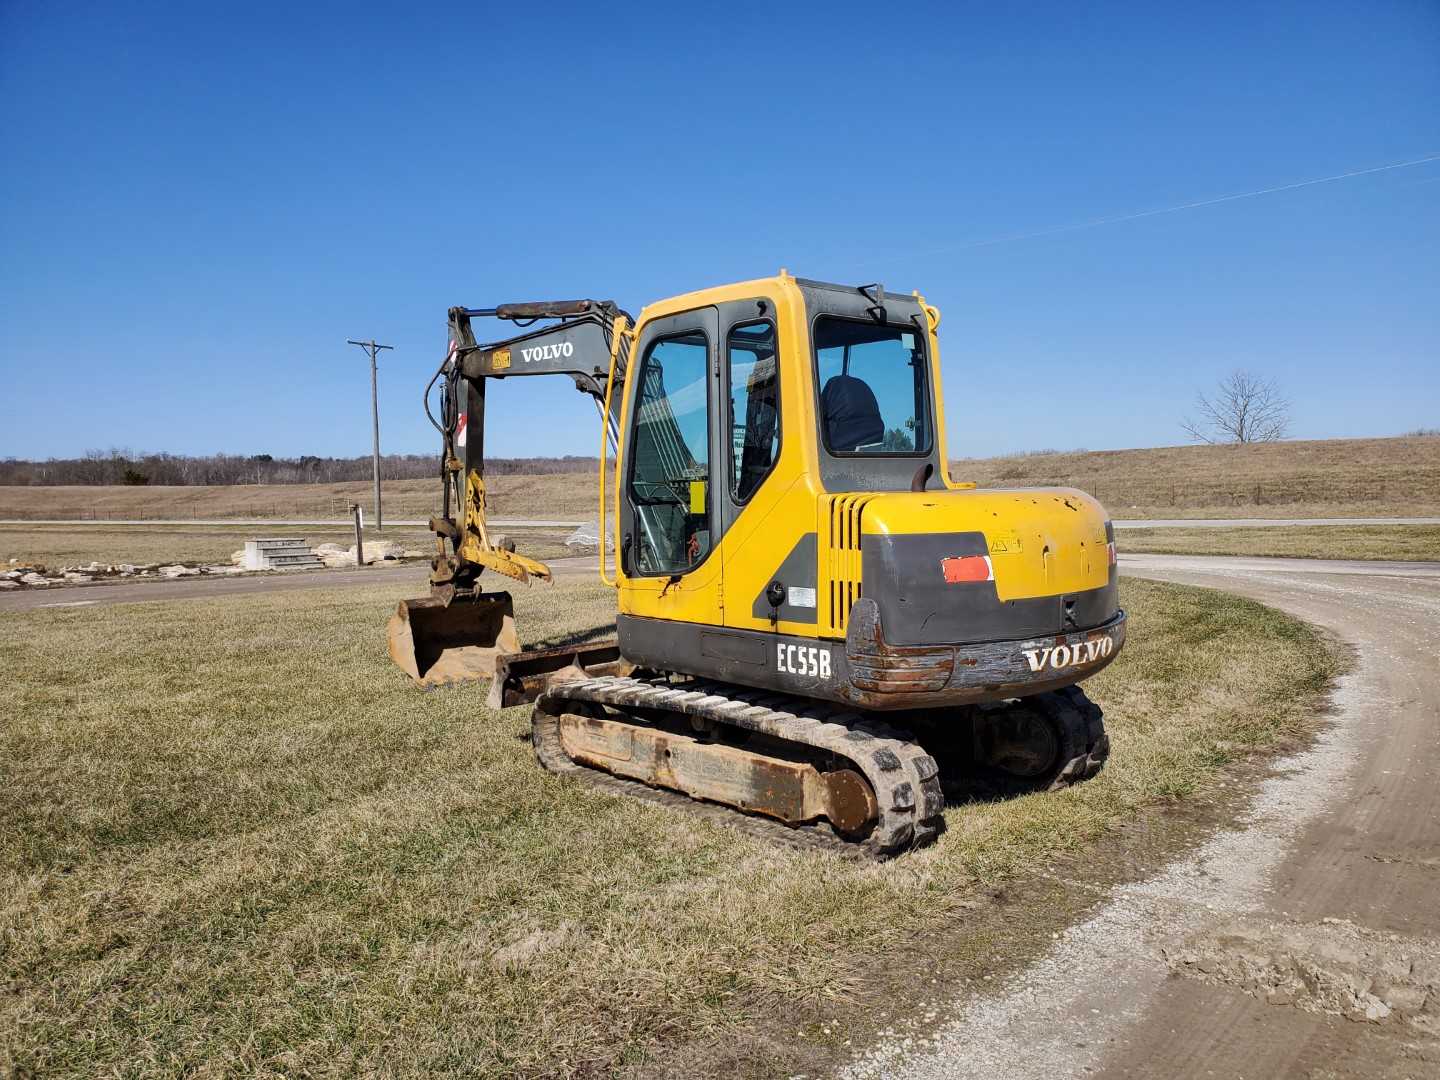 Lot 22 - 2005 Volvo EC55B Midi Excavator w/Thumb and Aux. Hydraulics New Tracks, 6,746 Hours, s/n EC55BY33192